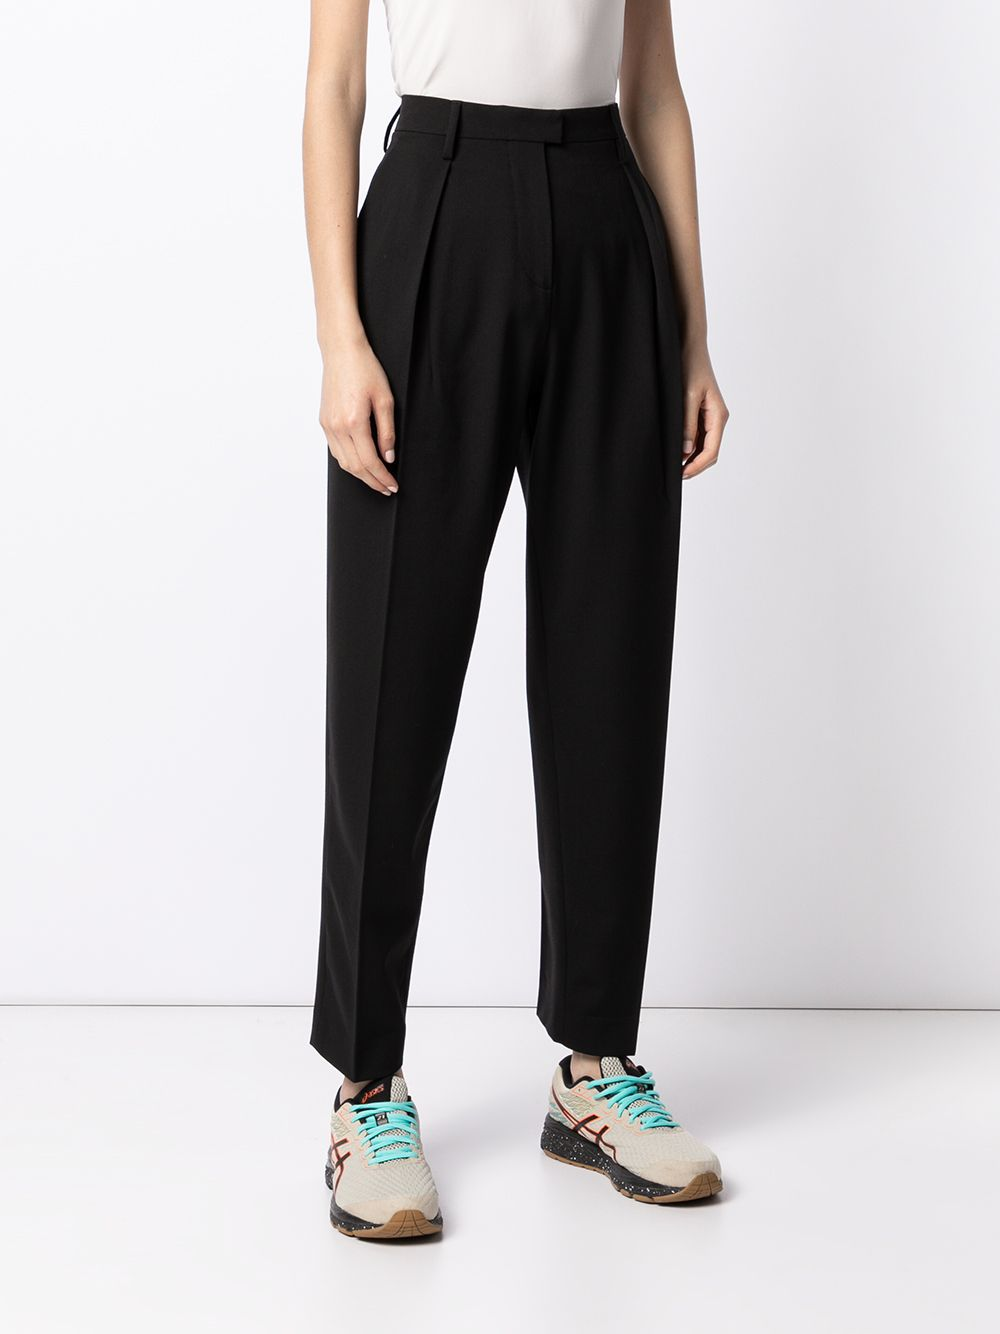 OFF-WHITE WOMEN FORMAL STRAIGHT LEG PANTS